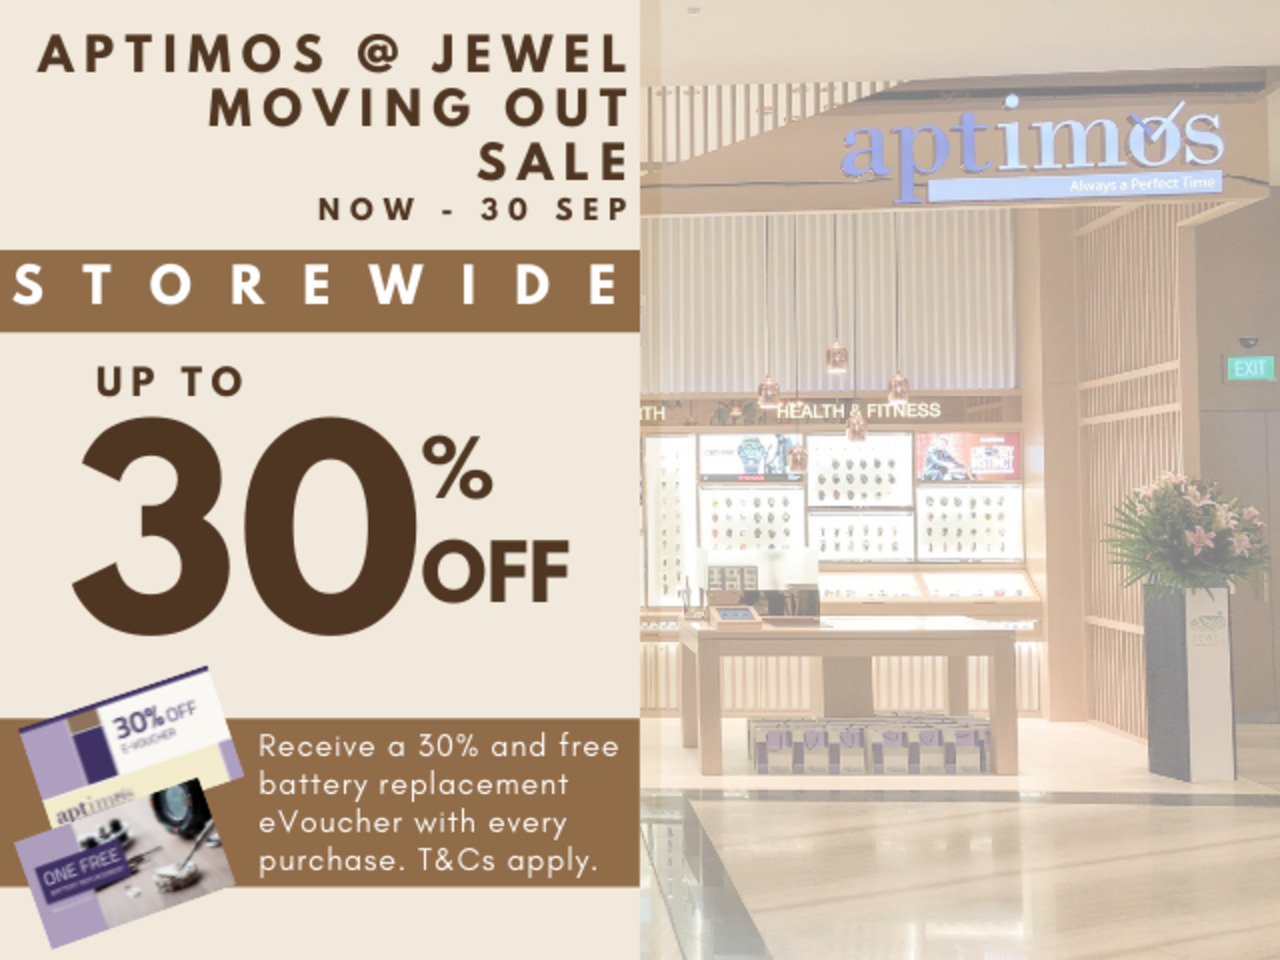 Aptimos @ Jewel Moving Out Sale: Enjoy up to 30% off store-wide with return eVouchers! Now till 30 Sep.